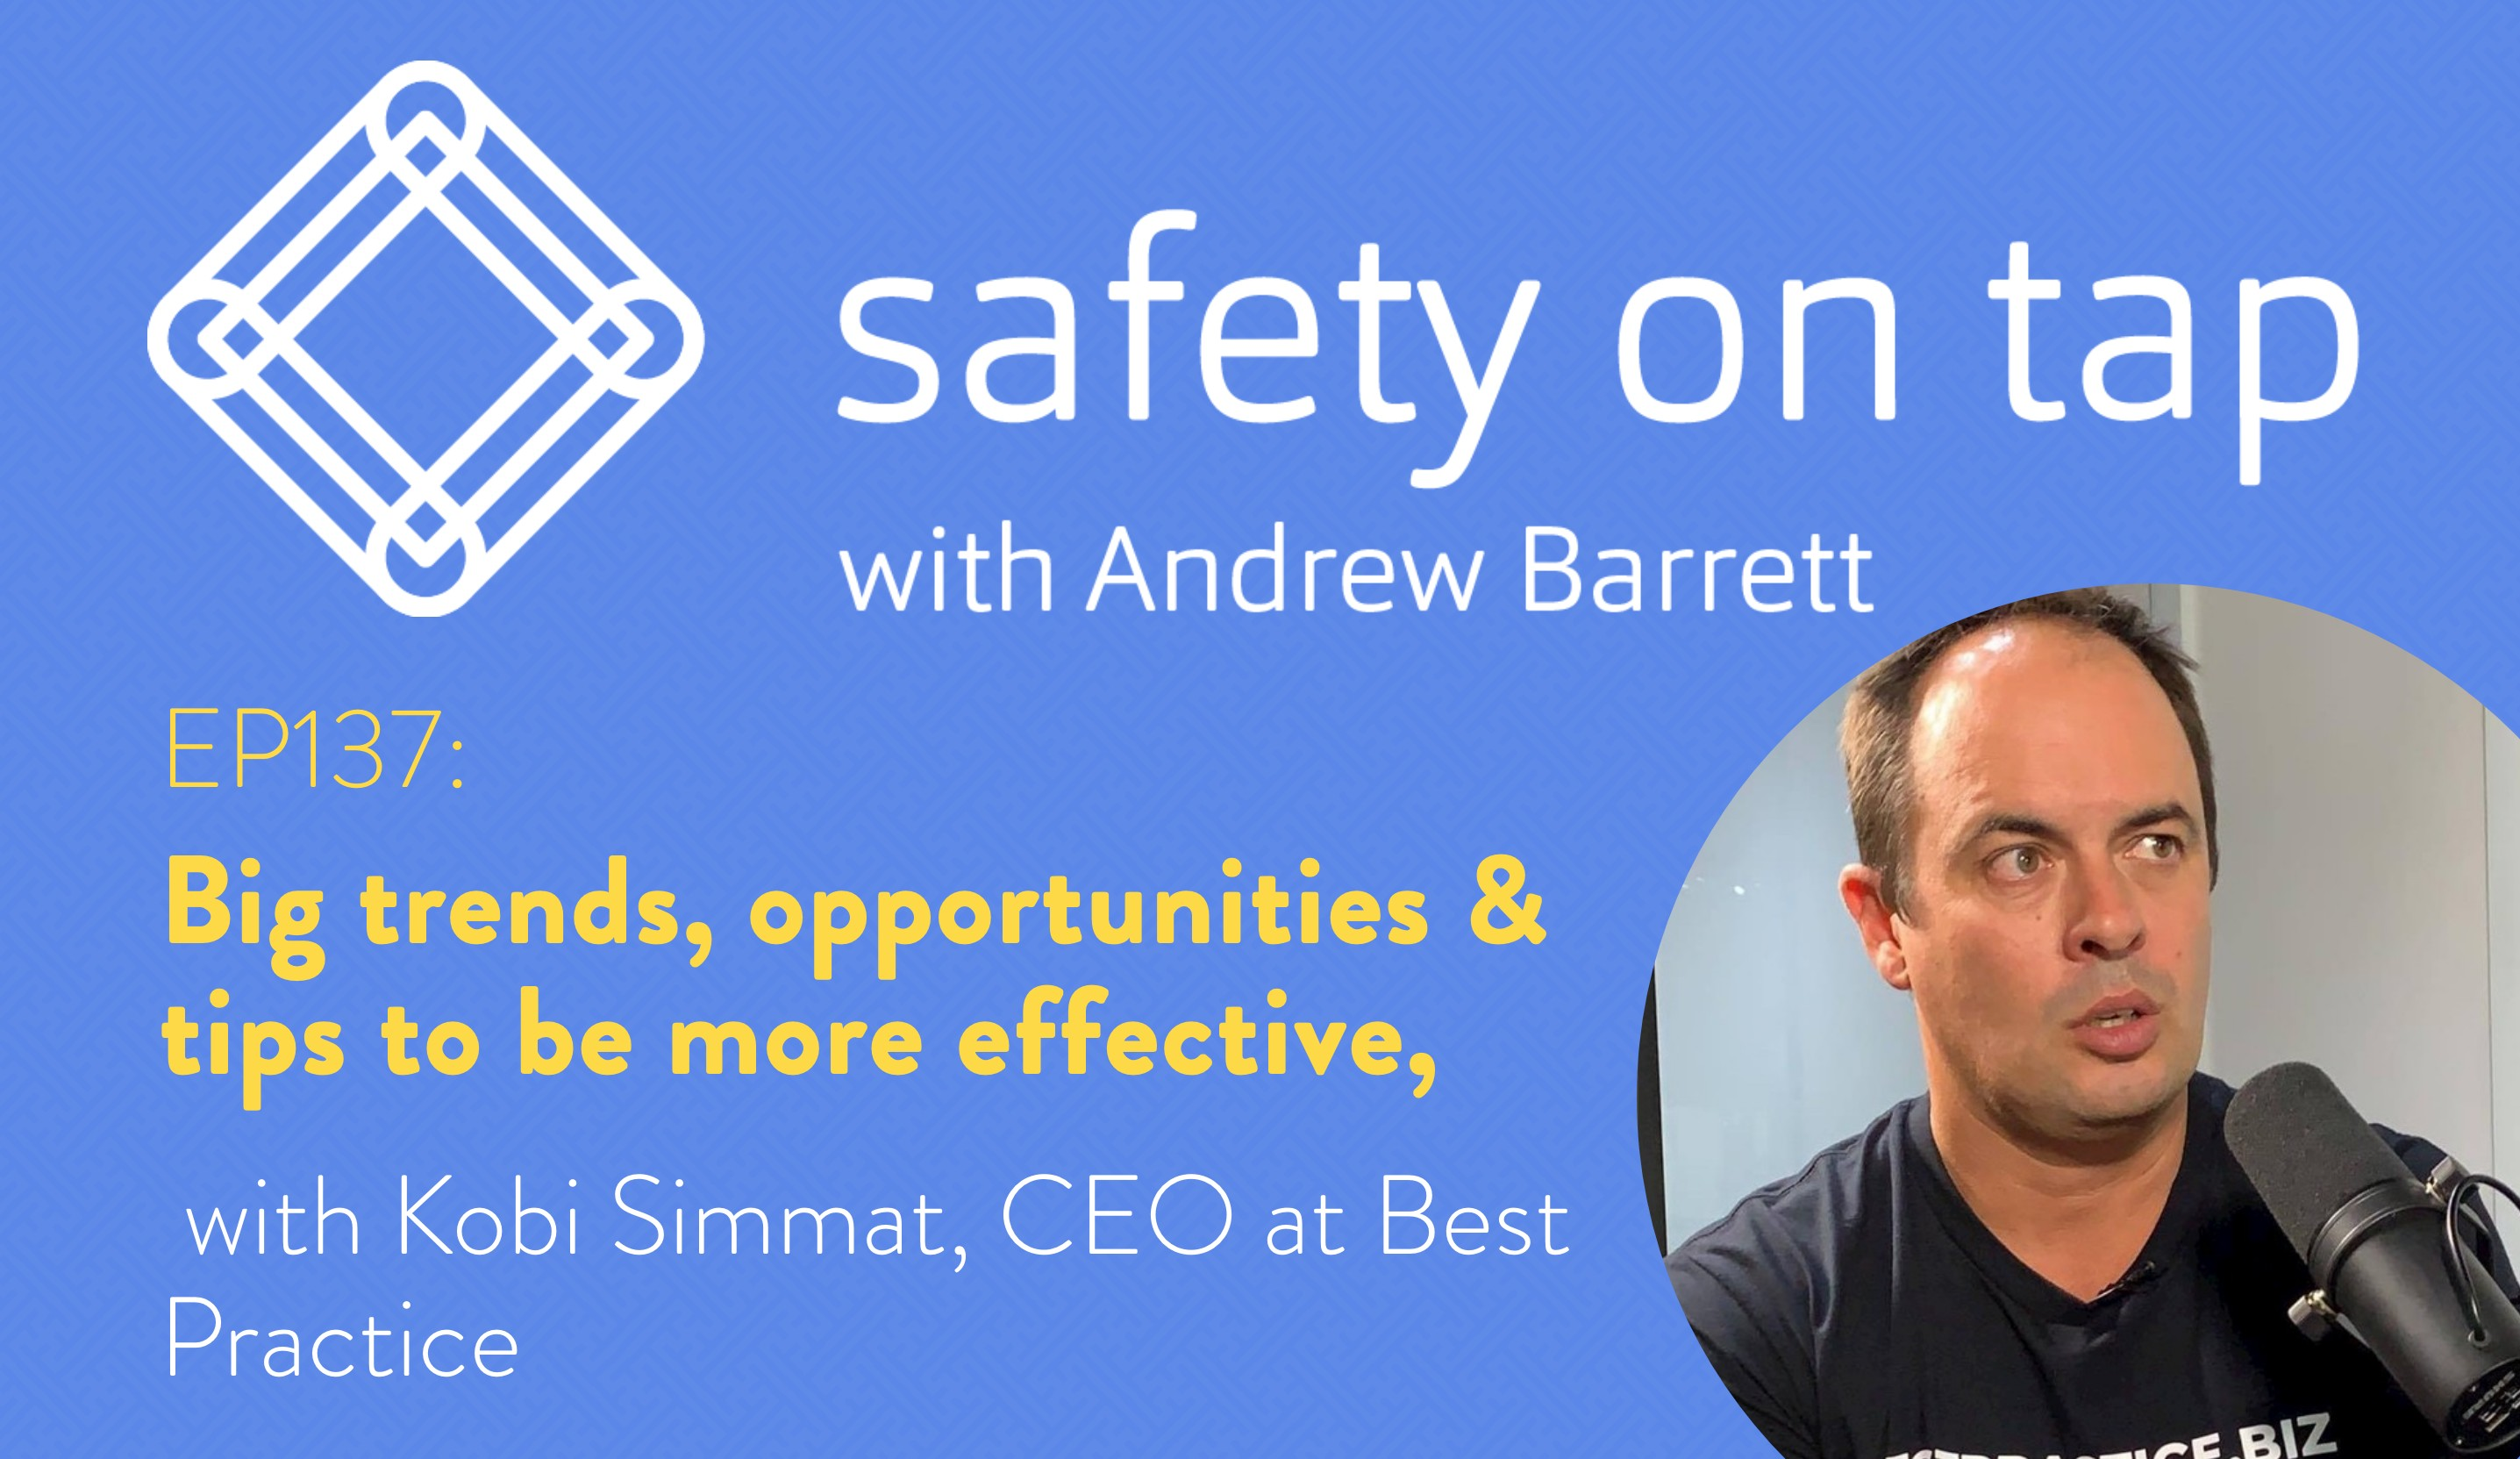 Ep137: Big trends, opportunities & tips to be more effective, with Kobi Simmat, CEO at Best Practice